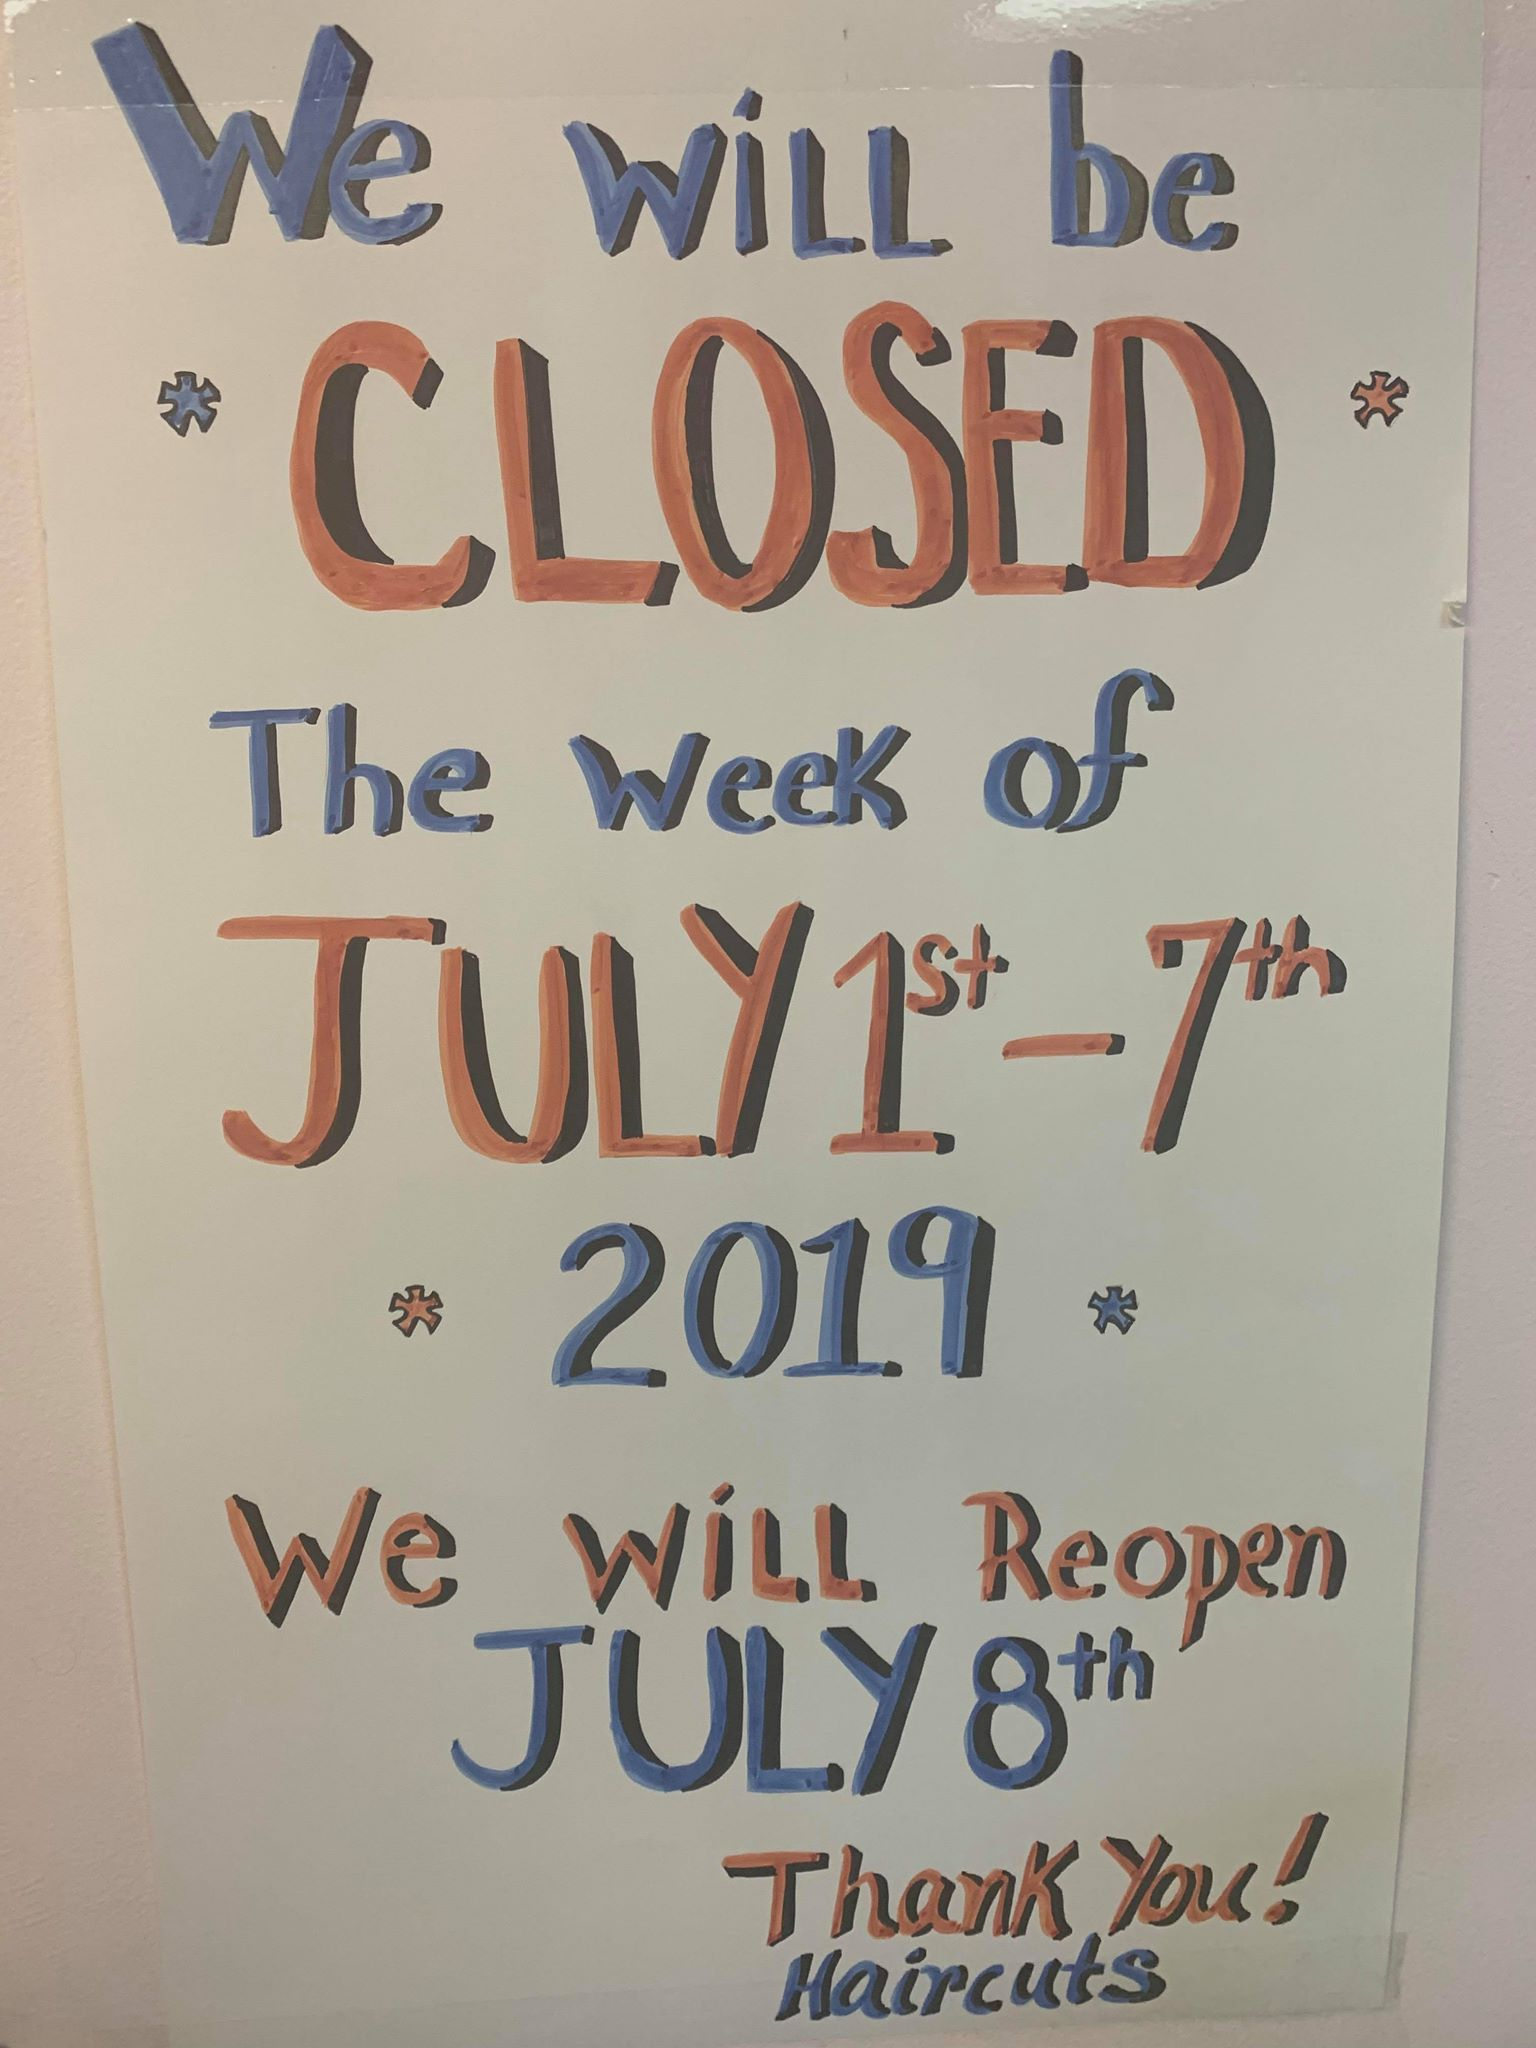 Closed First Week of July 2019 Haircuts, Inc